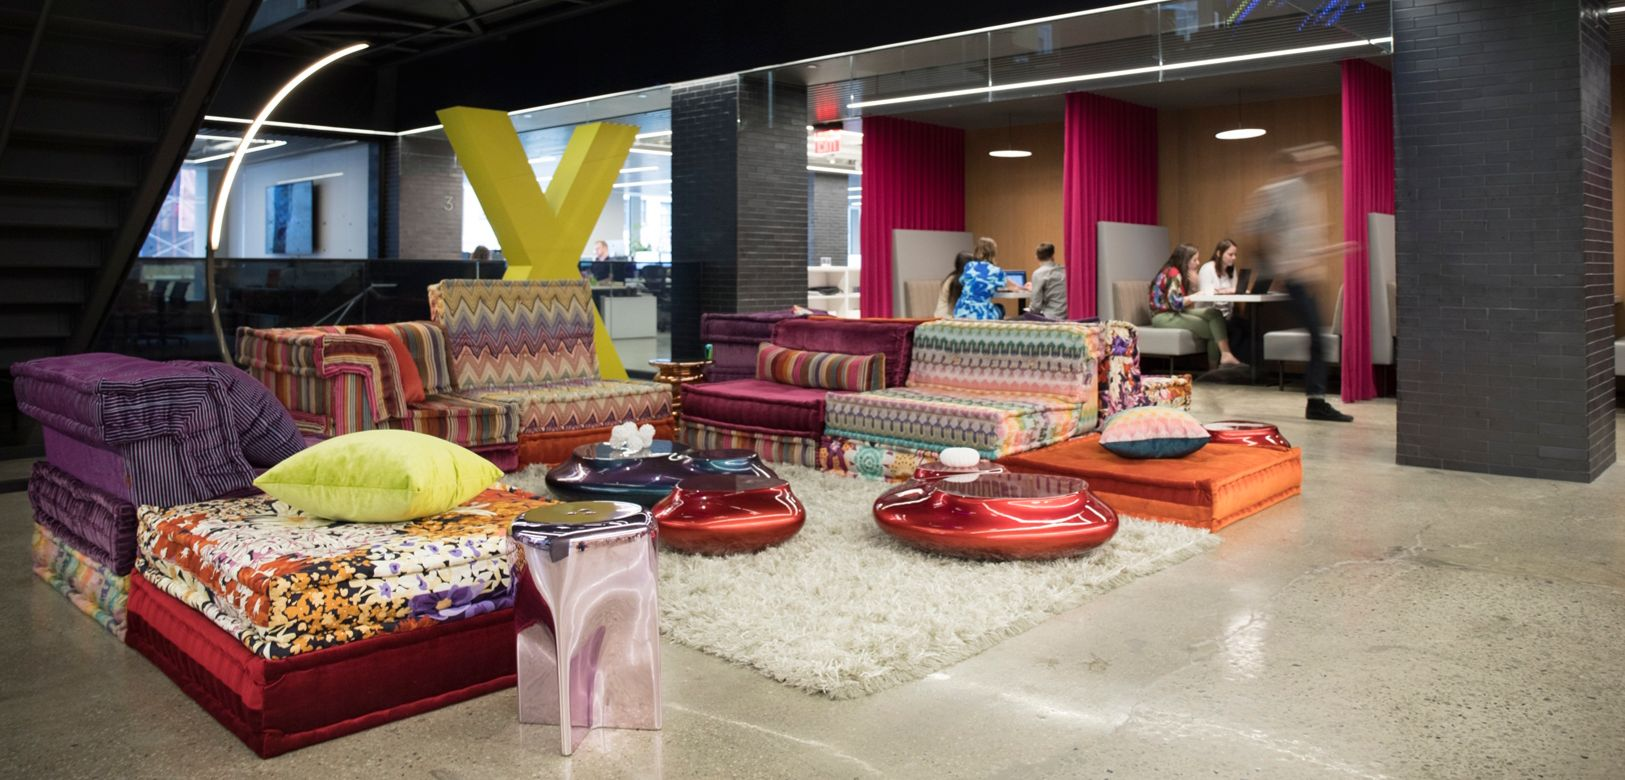 Roche Bobois Furnishes Lounge In International